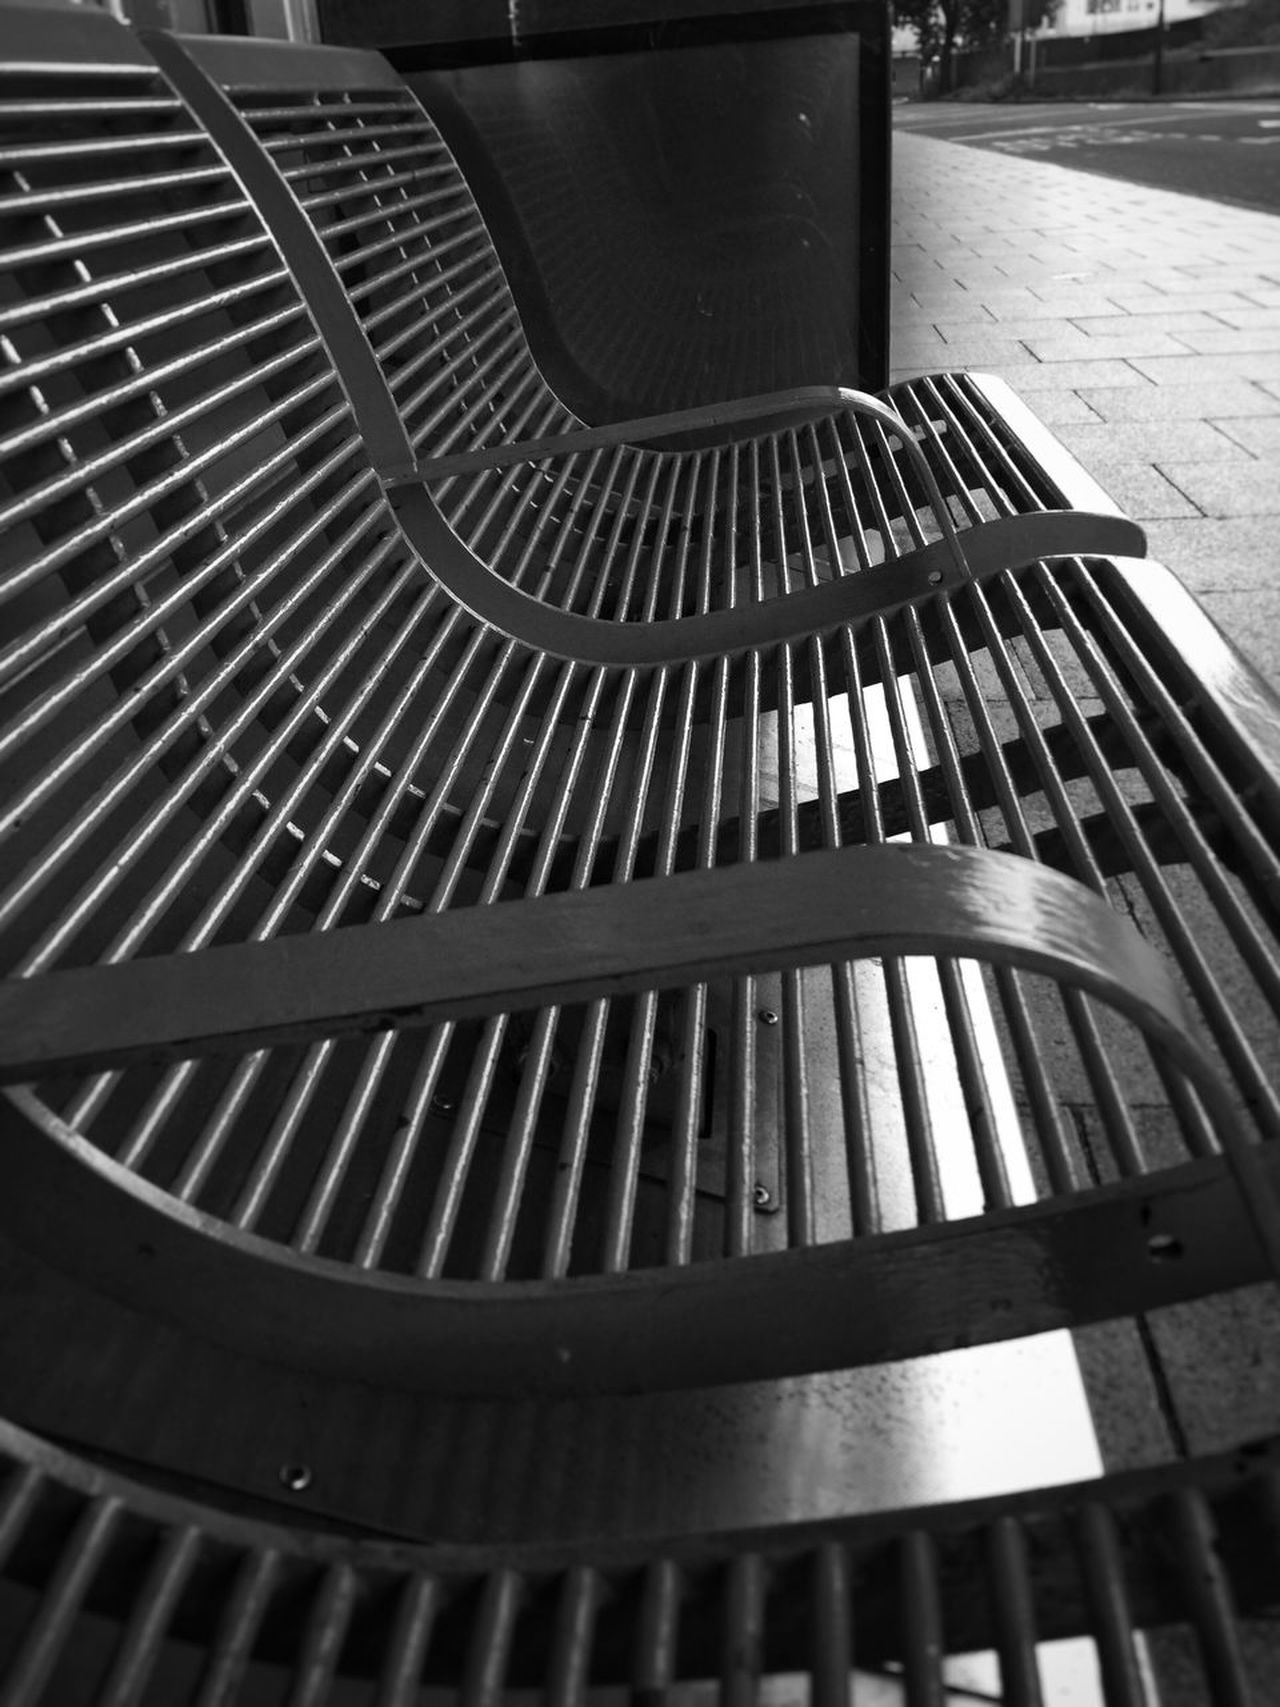 Metal Seat High Angle View No People Pattern Indoors  Day Close-up Musical Instrument